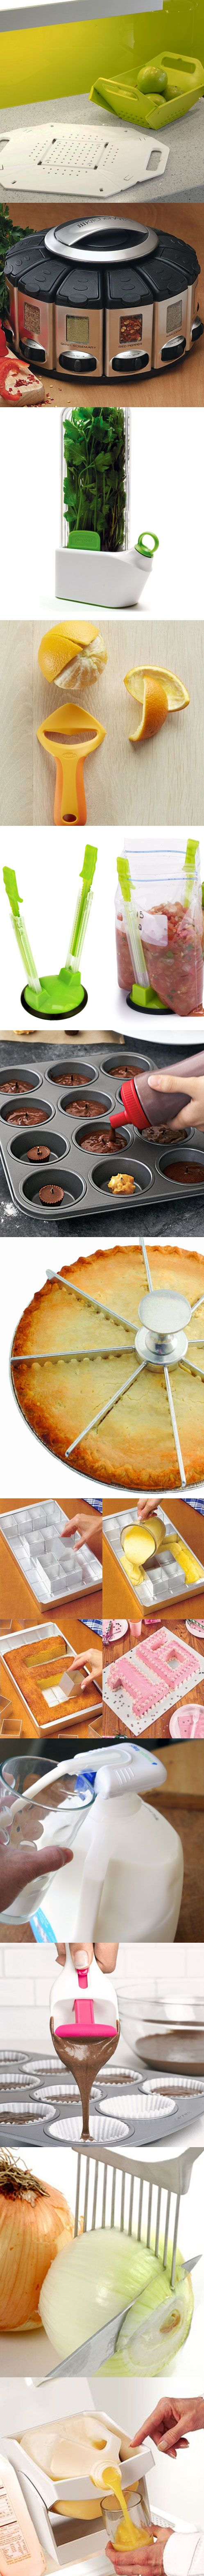 12-borderline-genius-gadgets-you-need-for-your-kitchen-and-where-you-can-buy-them.